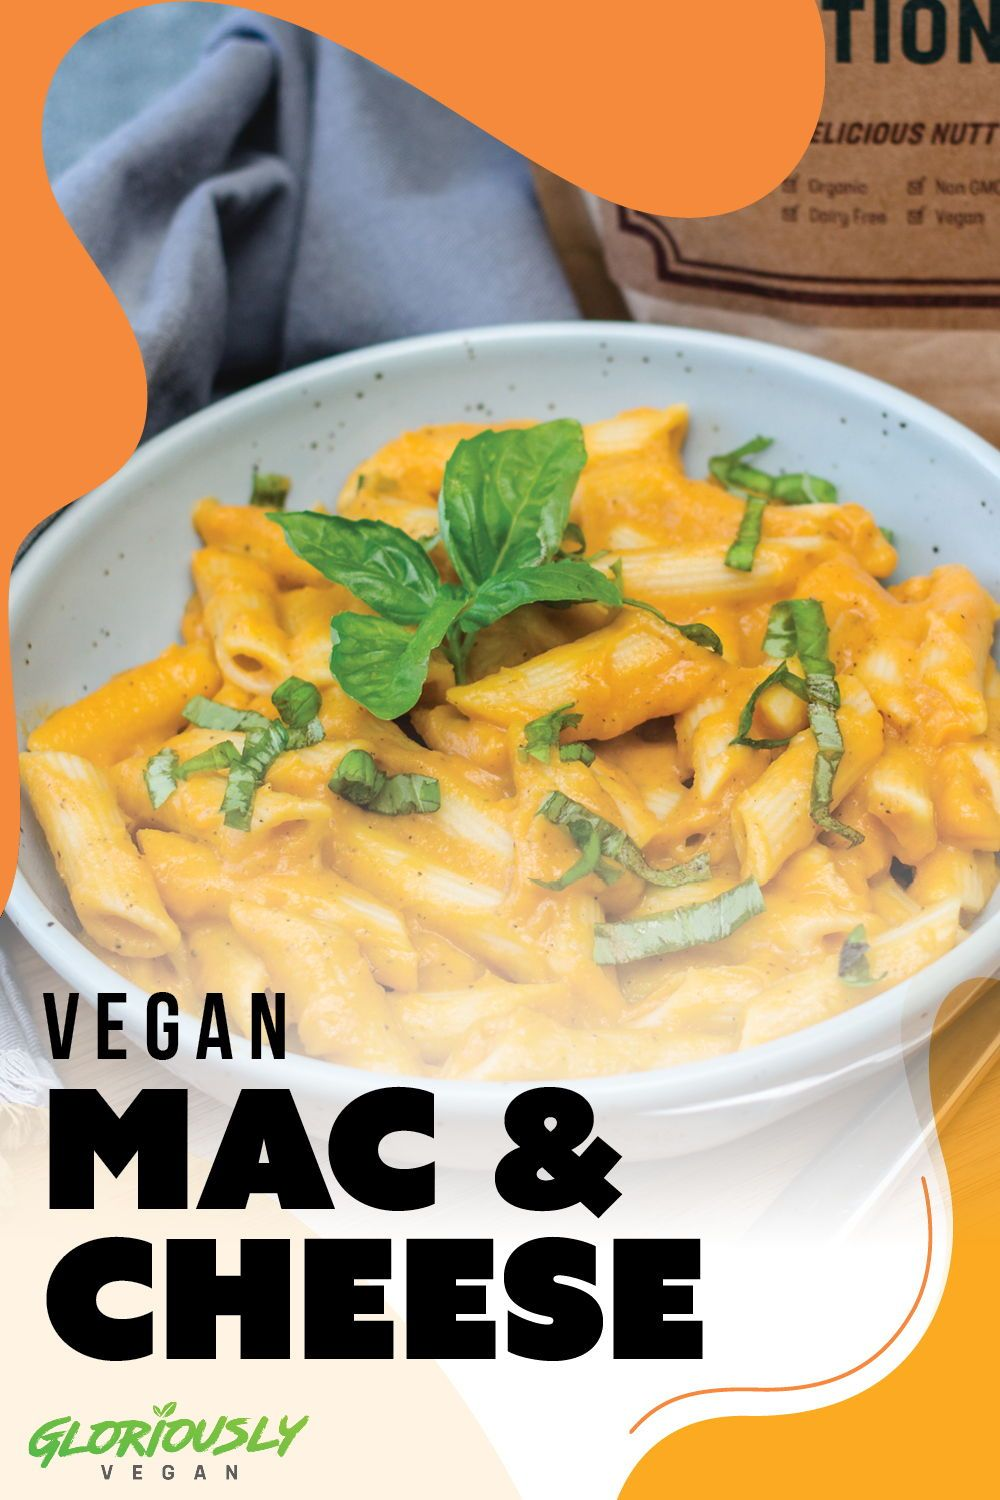 Vegan Mac And Cheese Gloriously Vegan Plant Based Recipes Nutrition For Your Mind Body Soul Recipe Vegan Mac And Cheese Vegan Recipes Healthy Recipes